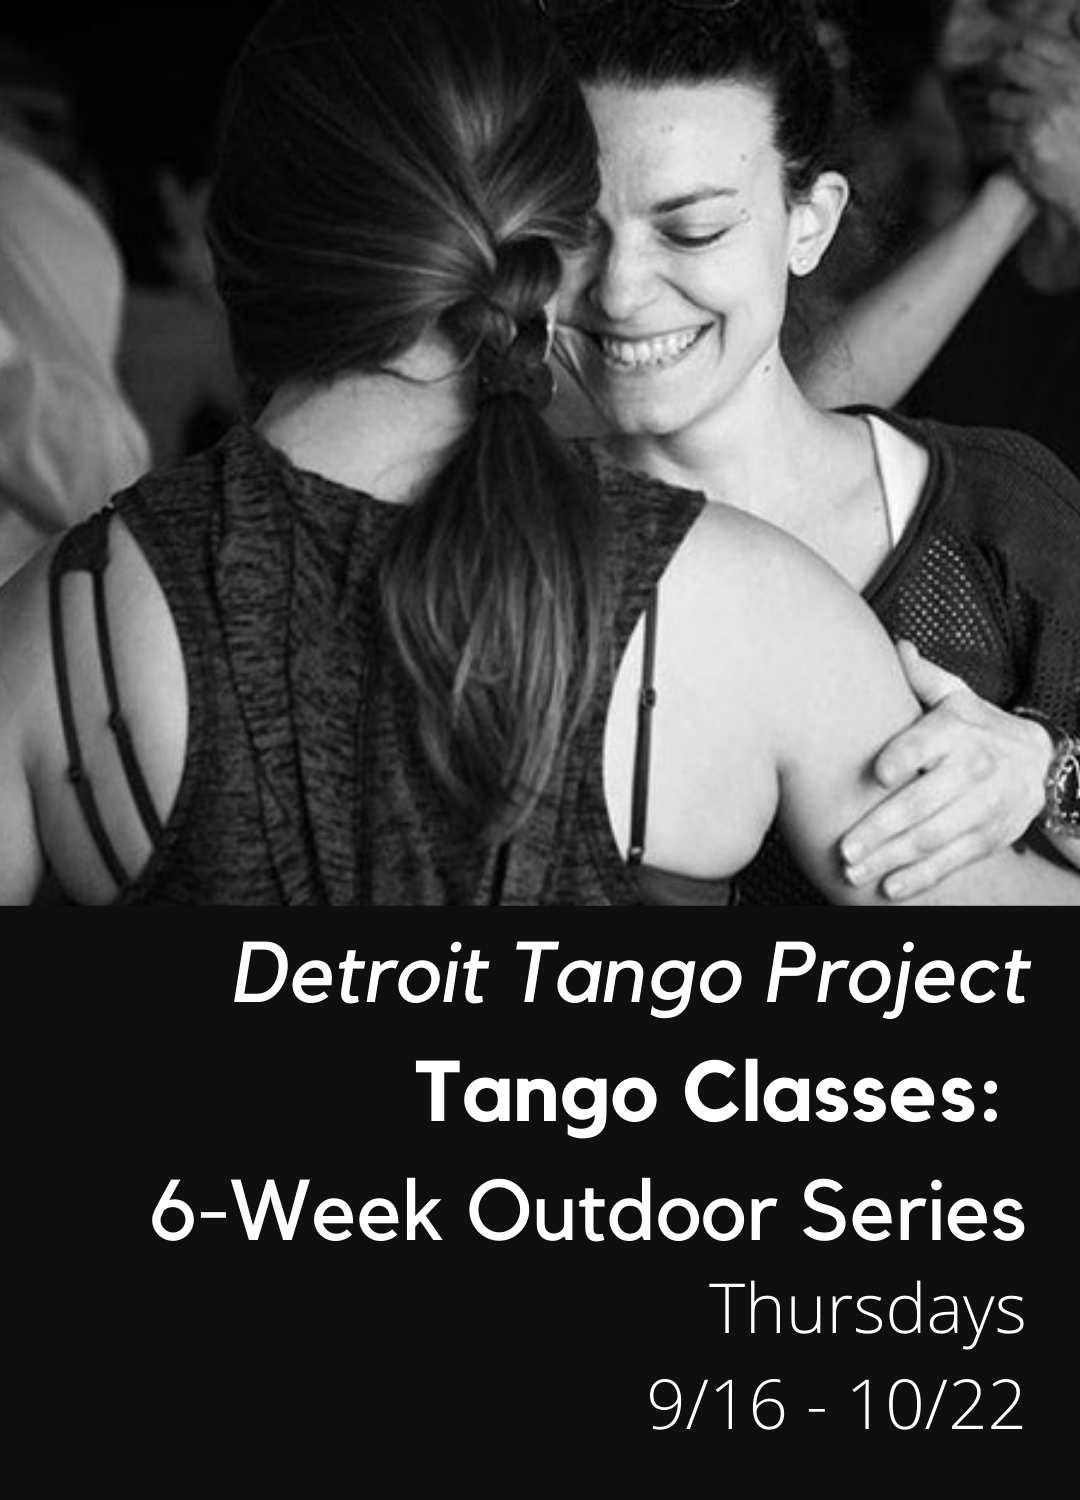 Poster for Detroit Tango Project Six-Week Tango Series